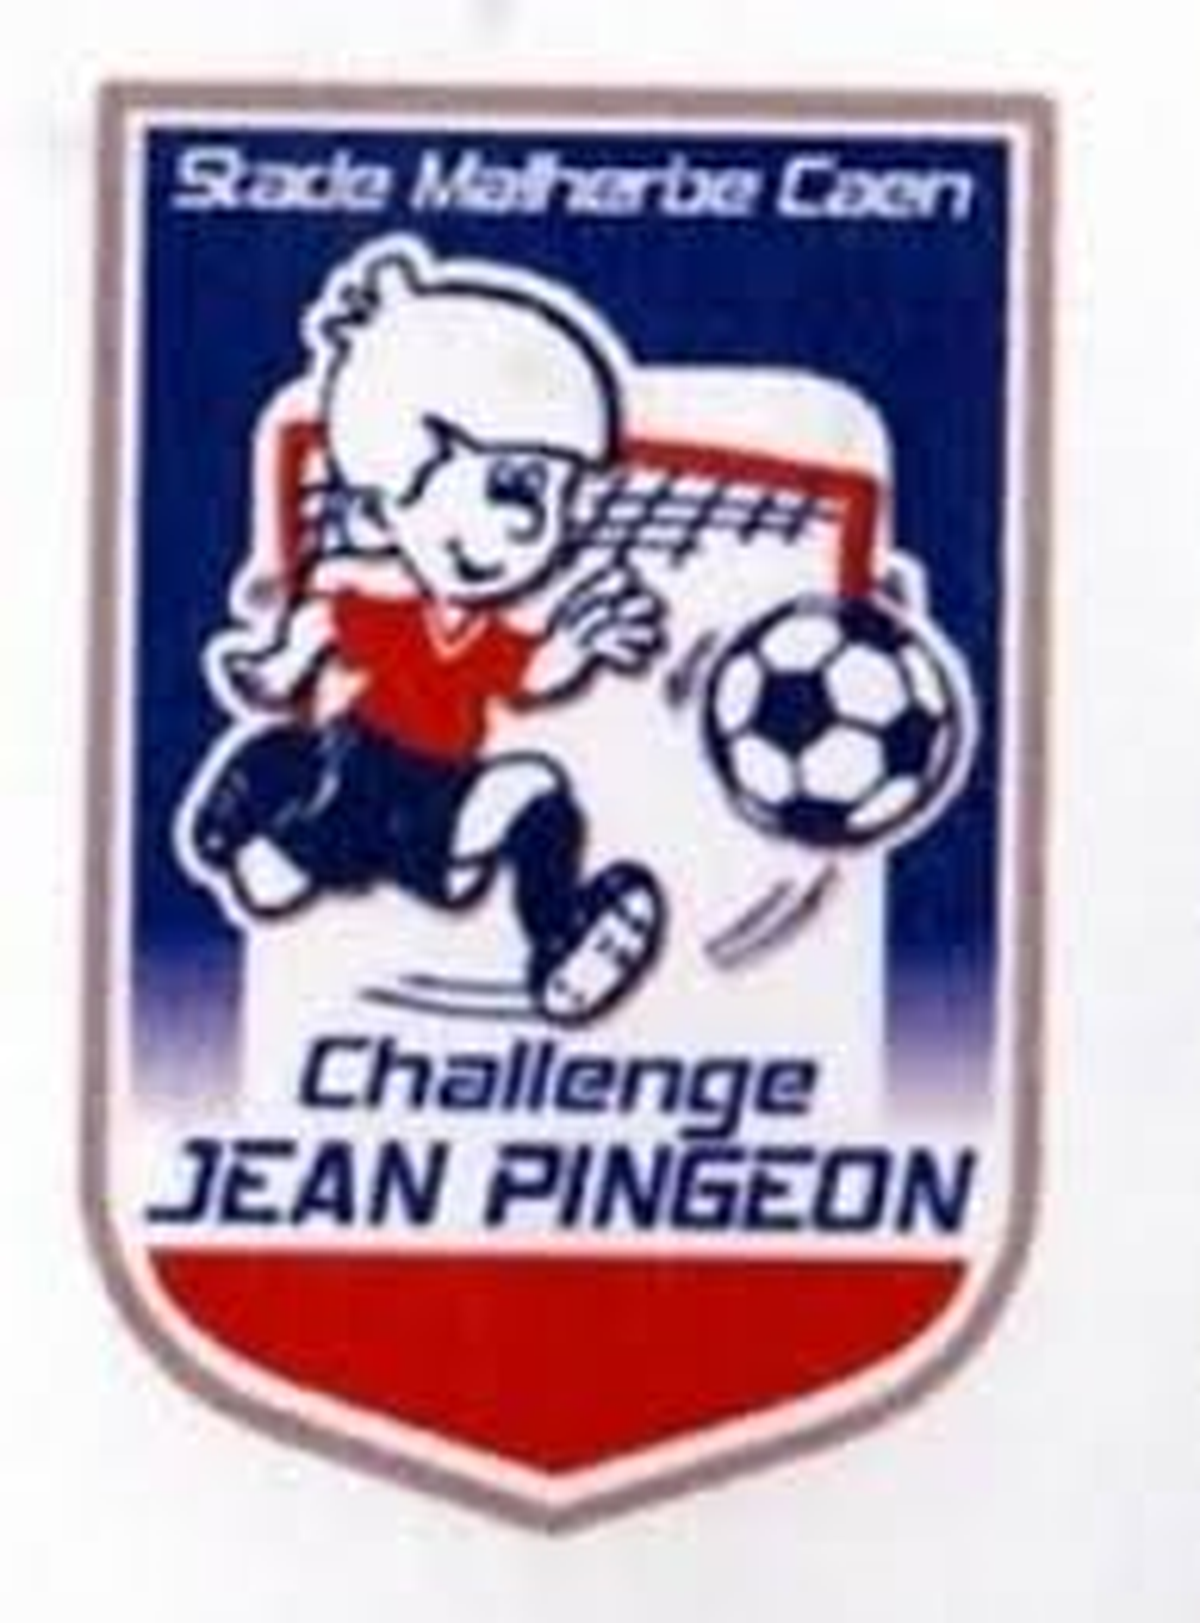 Tirage au sort du Challenge Jean Pingeon